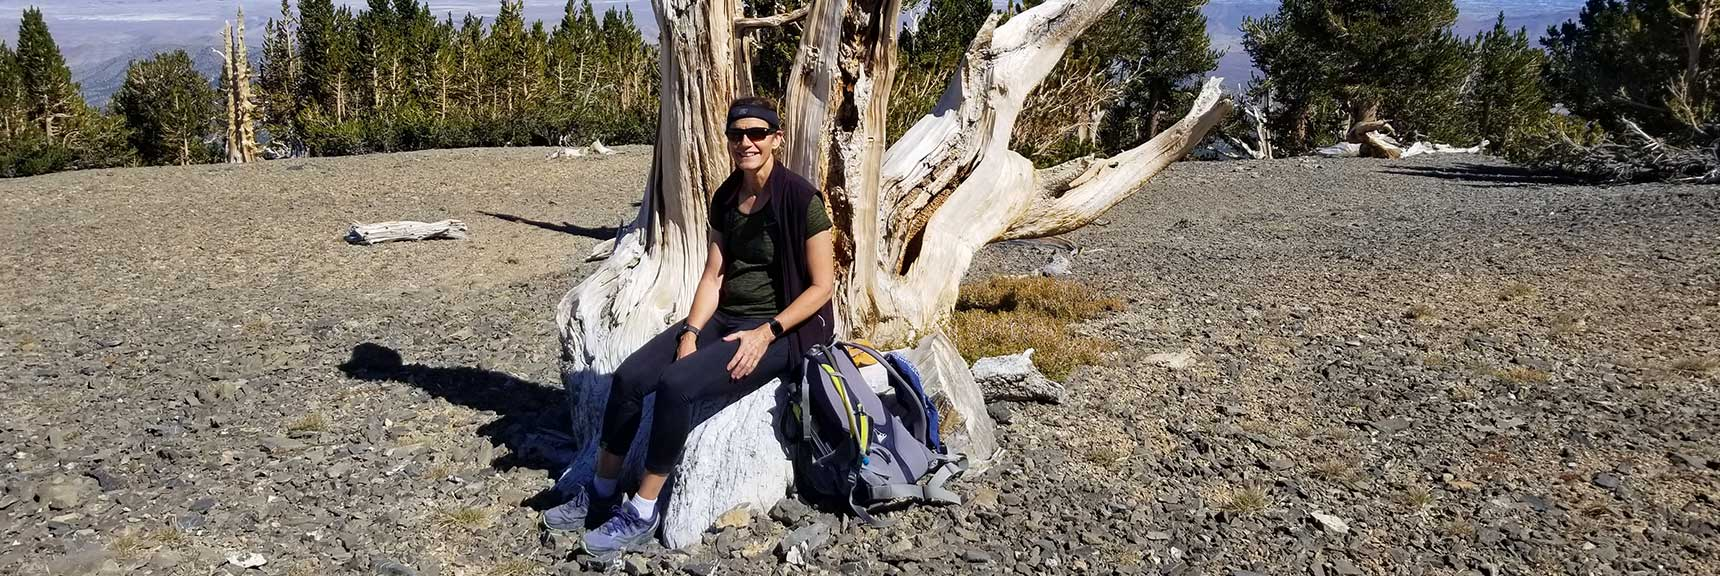 Perfect Chair Created by Ancient Bristlecone Pine Sculpture on Mummy Mt, Nevada